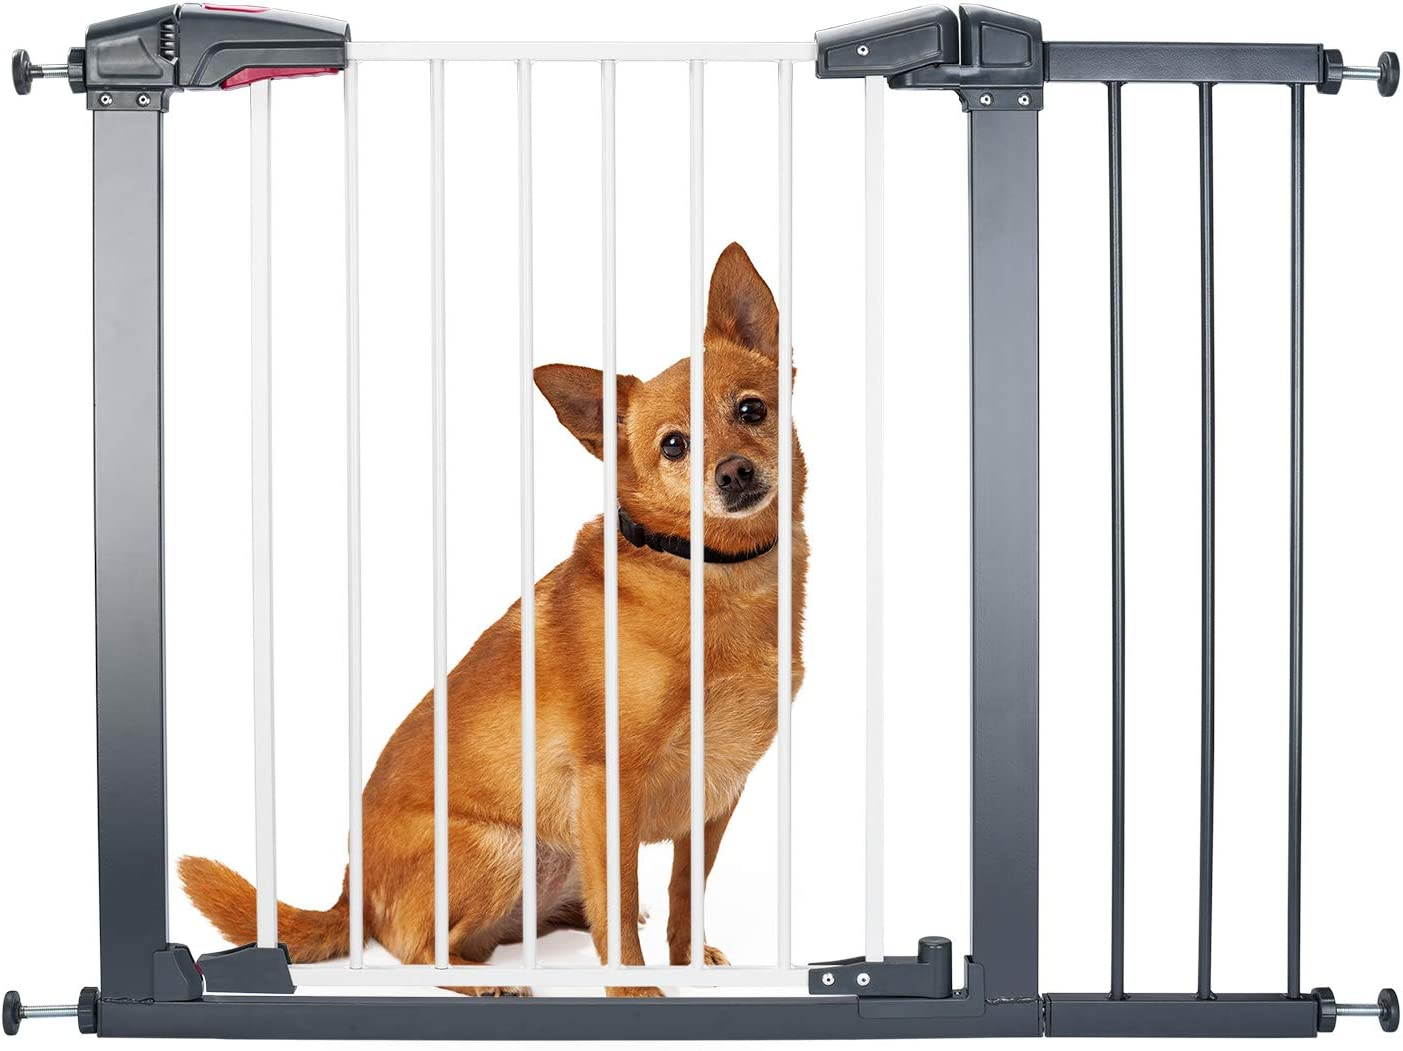 """Delxo Sturdy Safe Baby Gate with 4 Pressured Adjustment Bolts for Stairs/Doorways, 29"""" to 34"""" Wide 32'' Height, Single-Hand Easy Walk-Through No Tools Required Install for Baby/Dogs/Cats"""